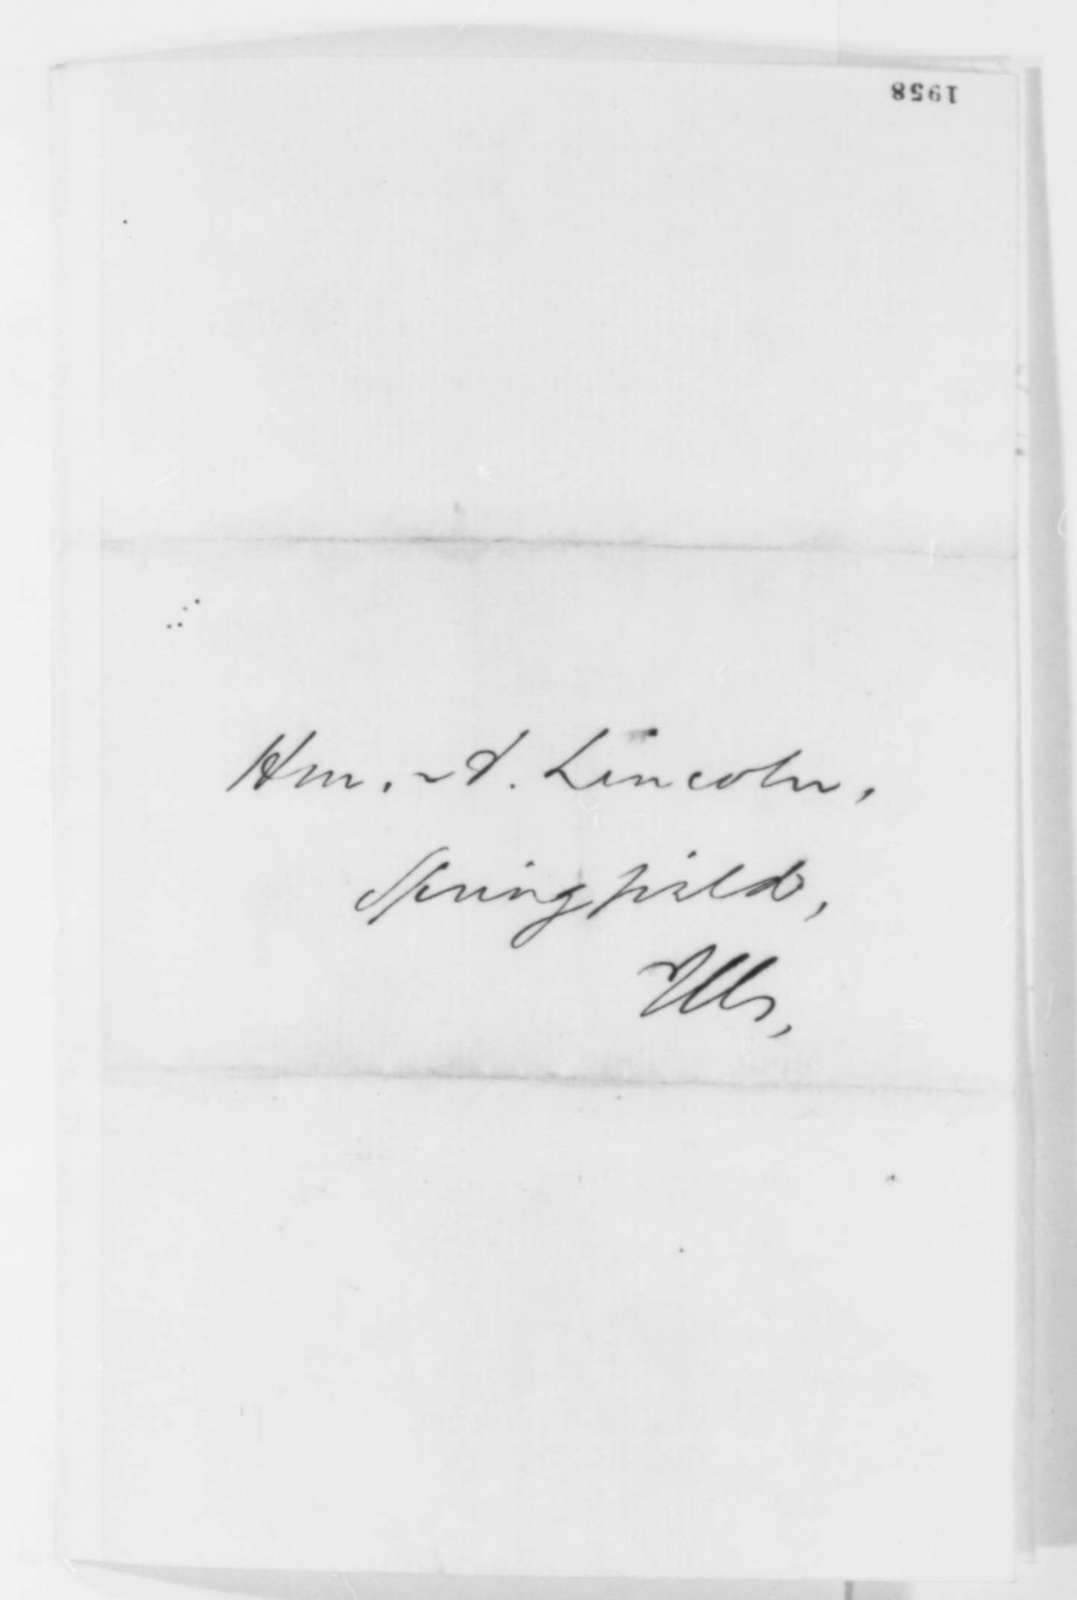 Charles H. Ray to Abraham Lincoln, September 1859